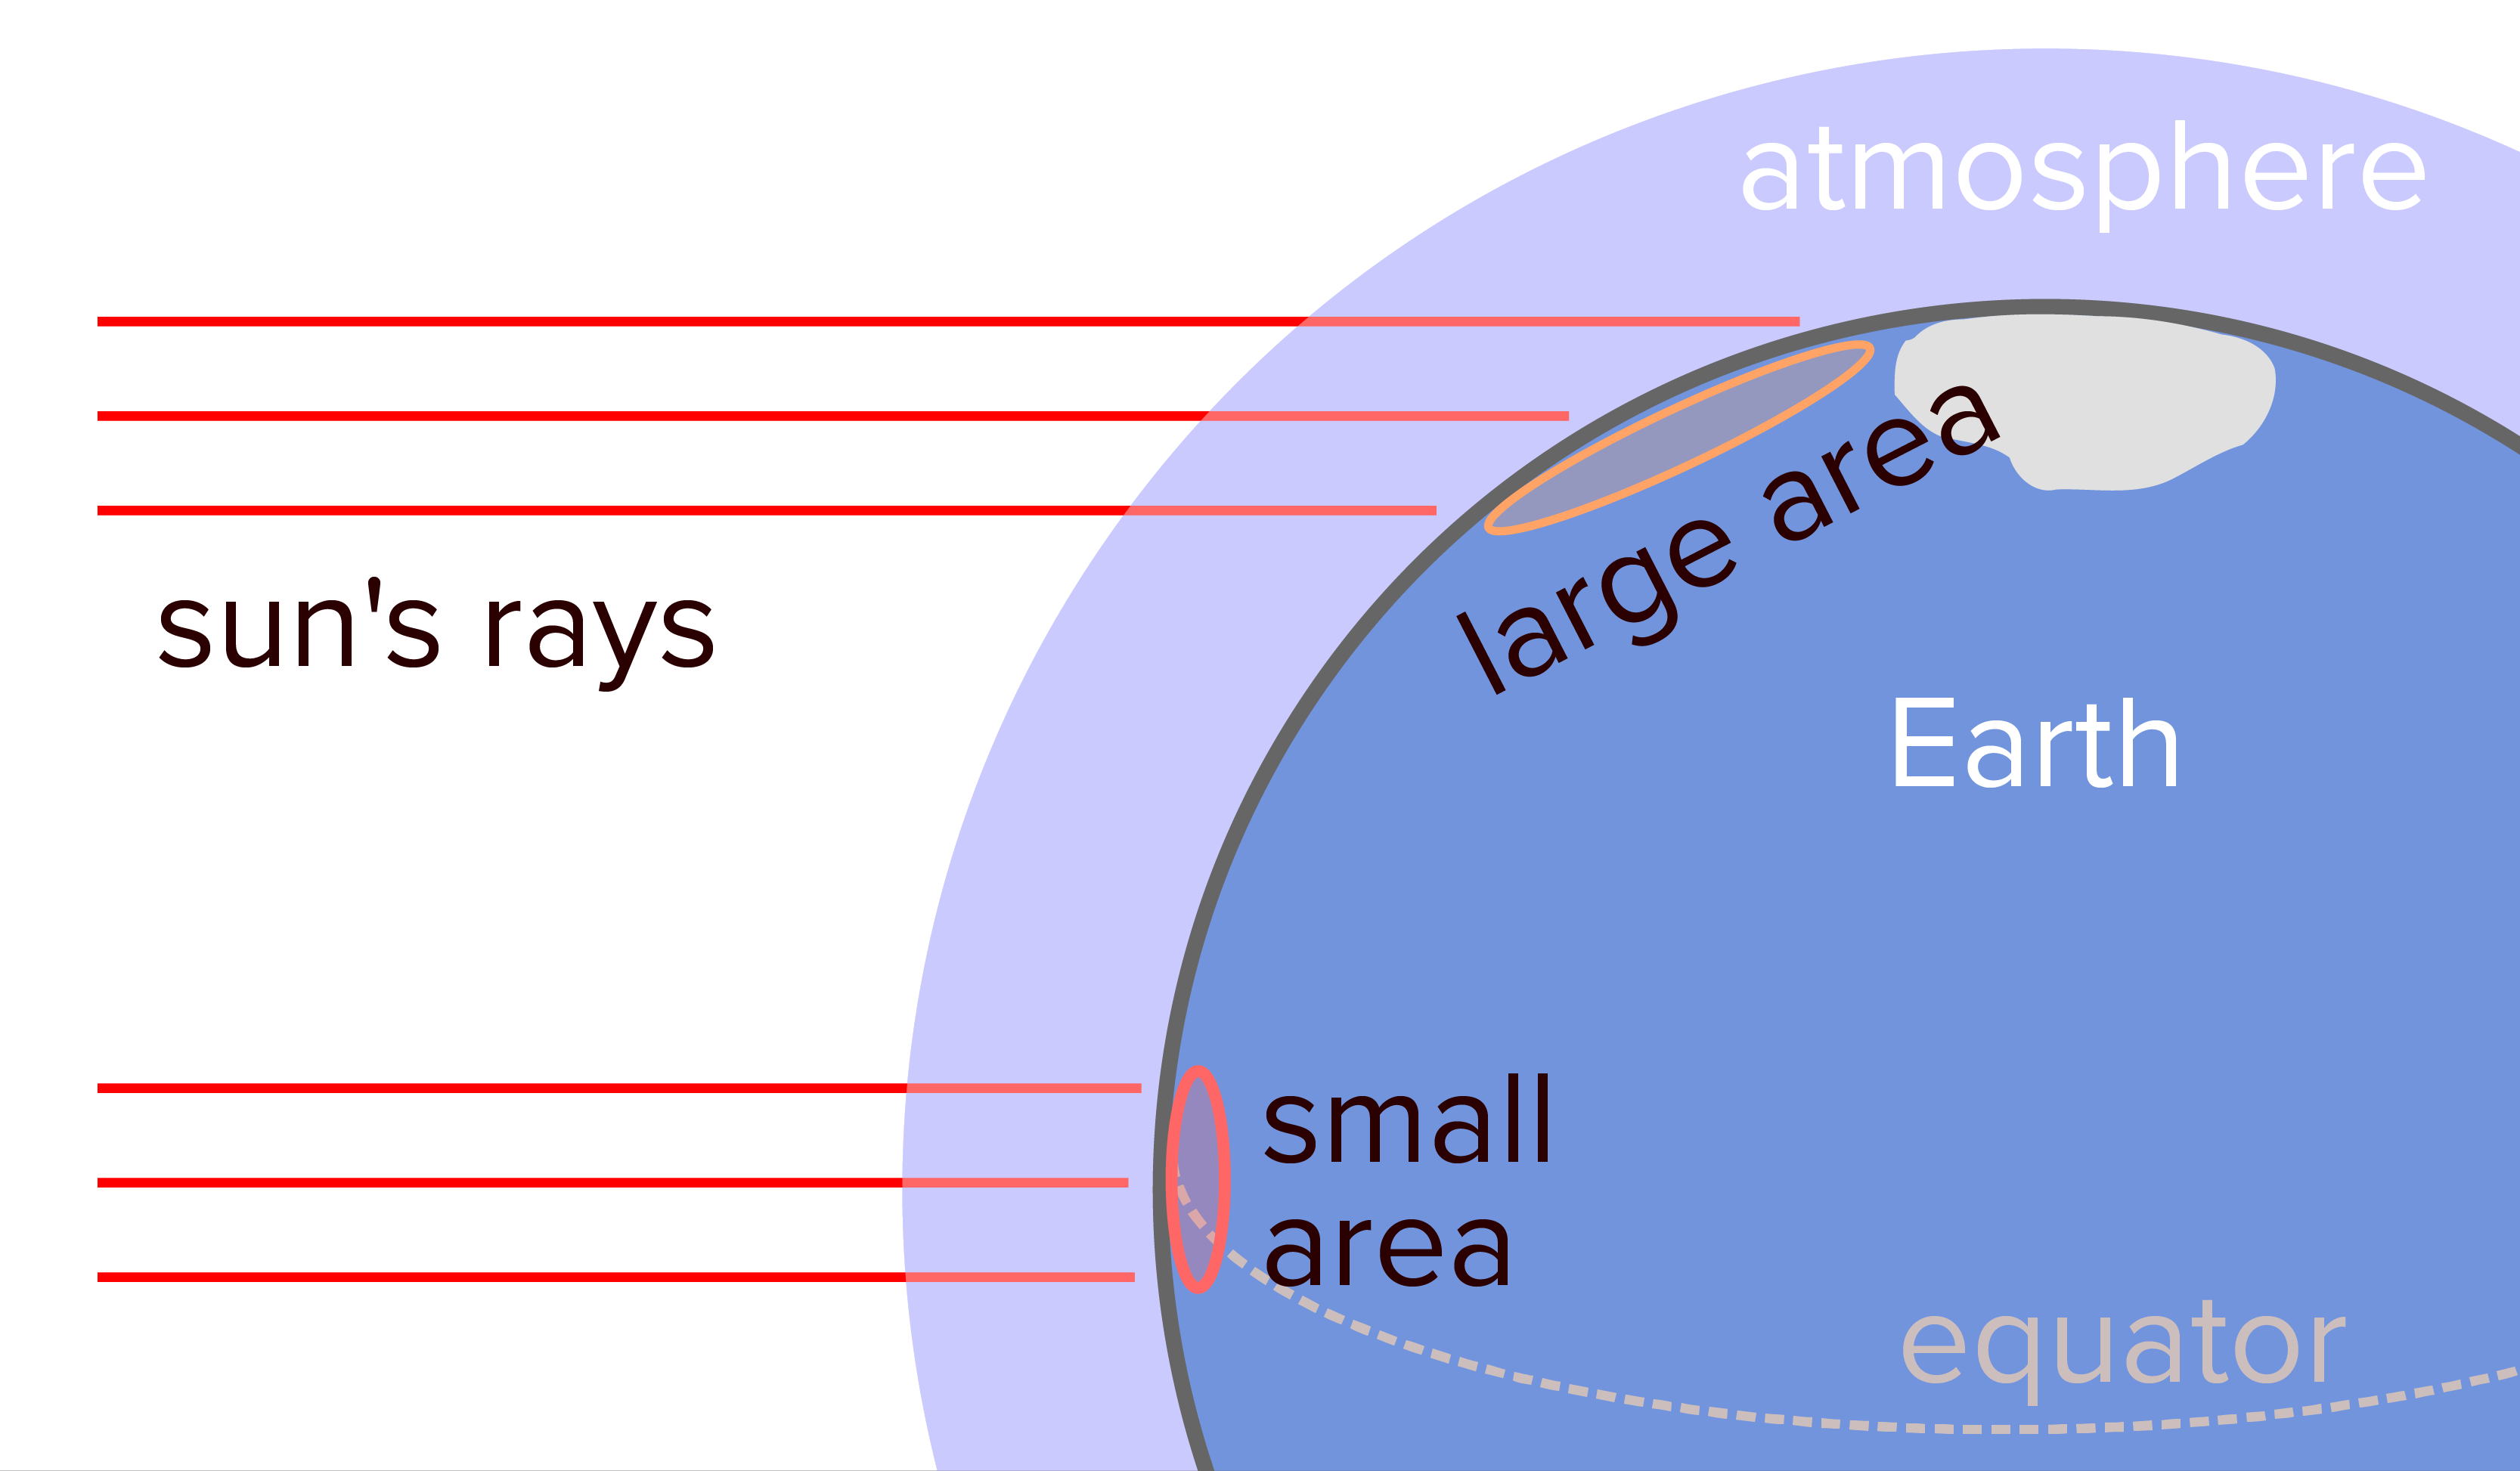 Climate Article Biogeography Khan Academy Important Diagrams From Earth39s Interior Power Point Presentation Diagram Illustrating That Rays Of Sunlight Hit The Earth Directly More Or Less Straight On